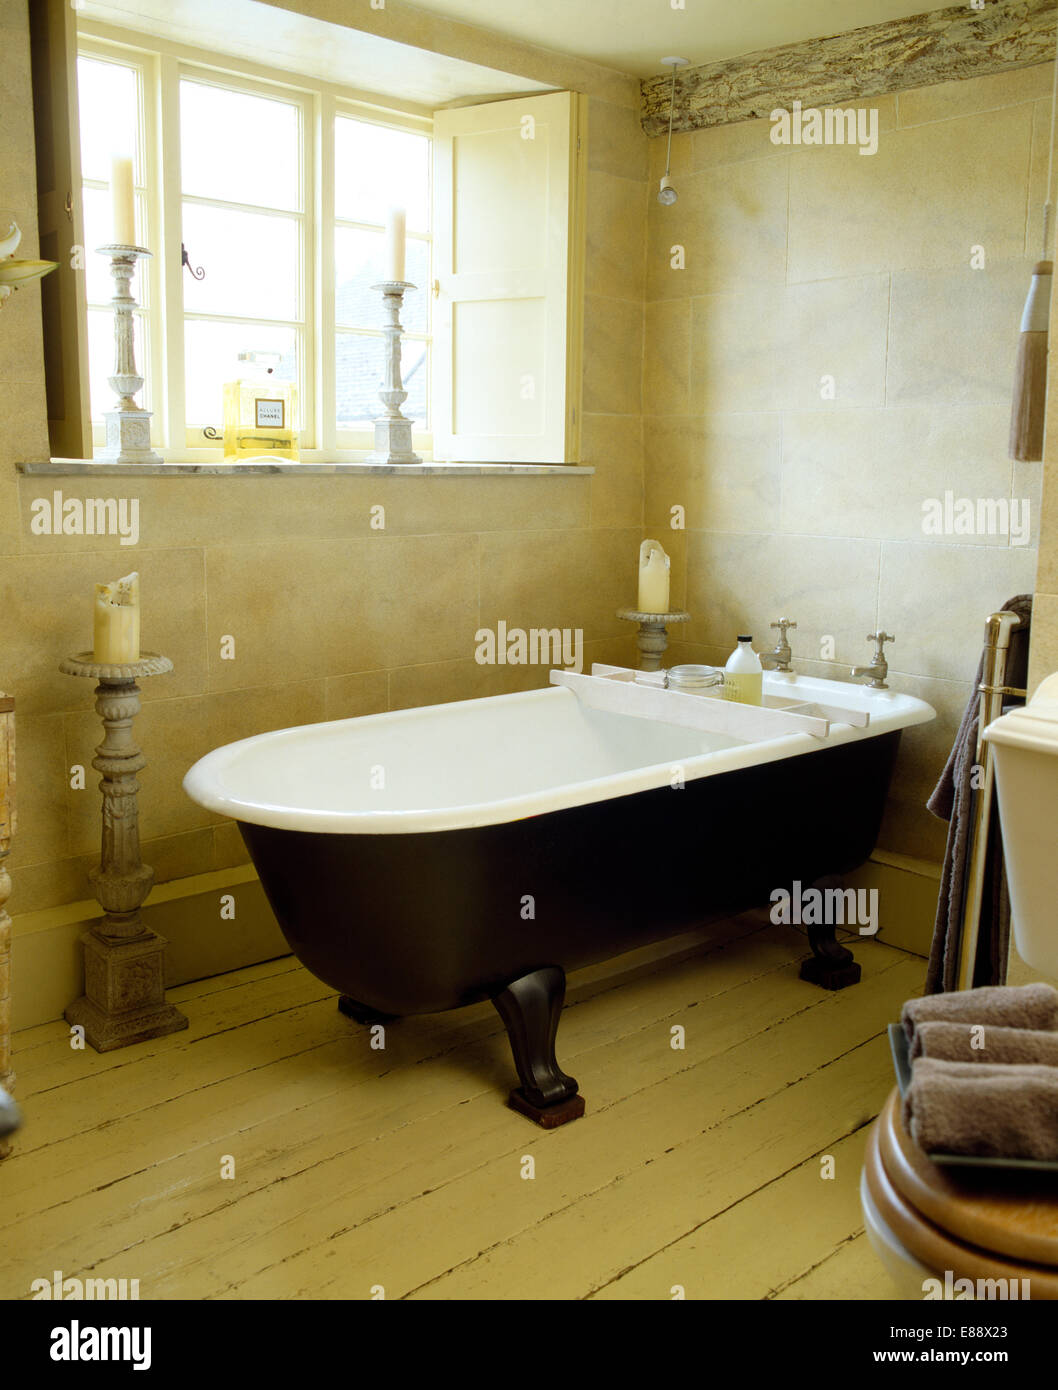 Roll Top Bath In Cottage Bathroom With Wooden Flooring And